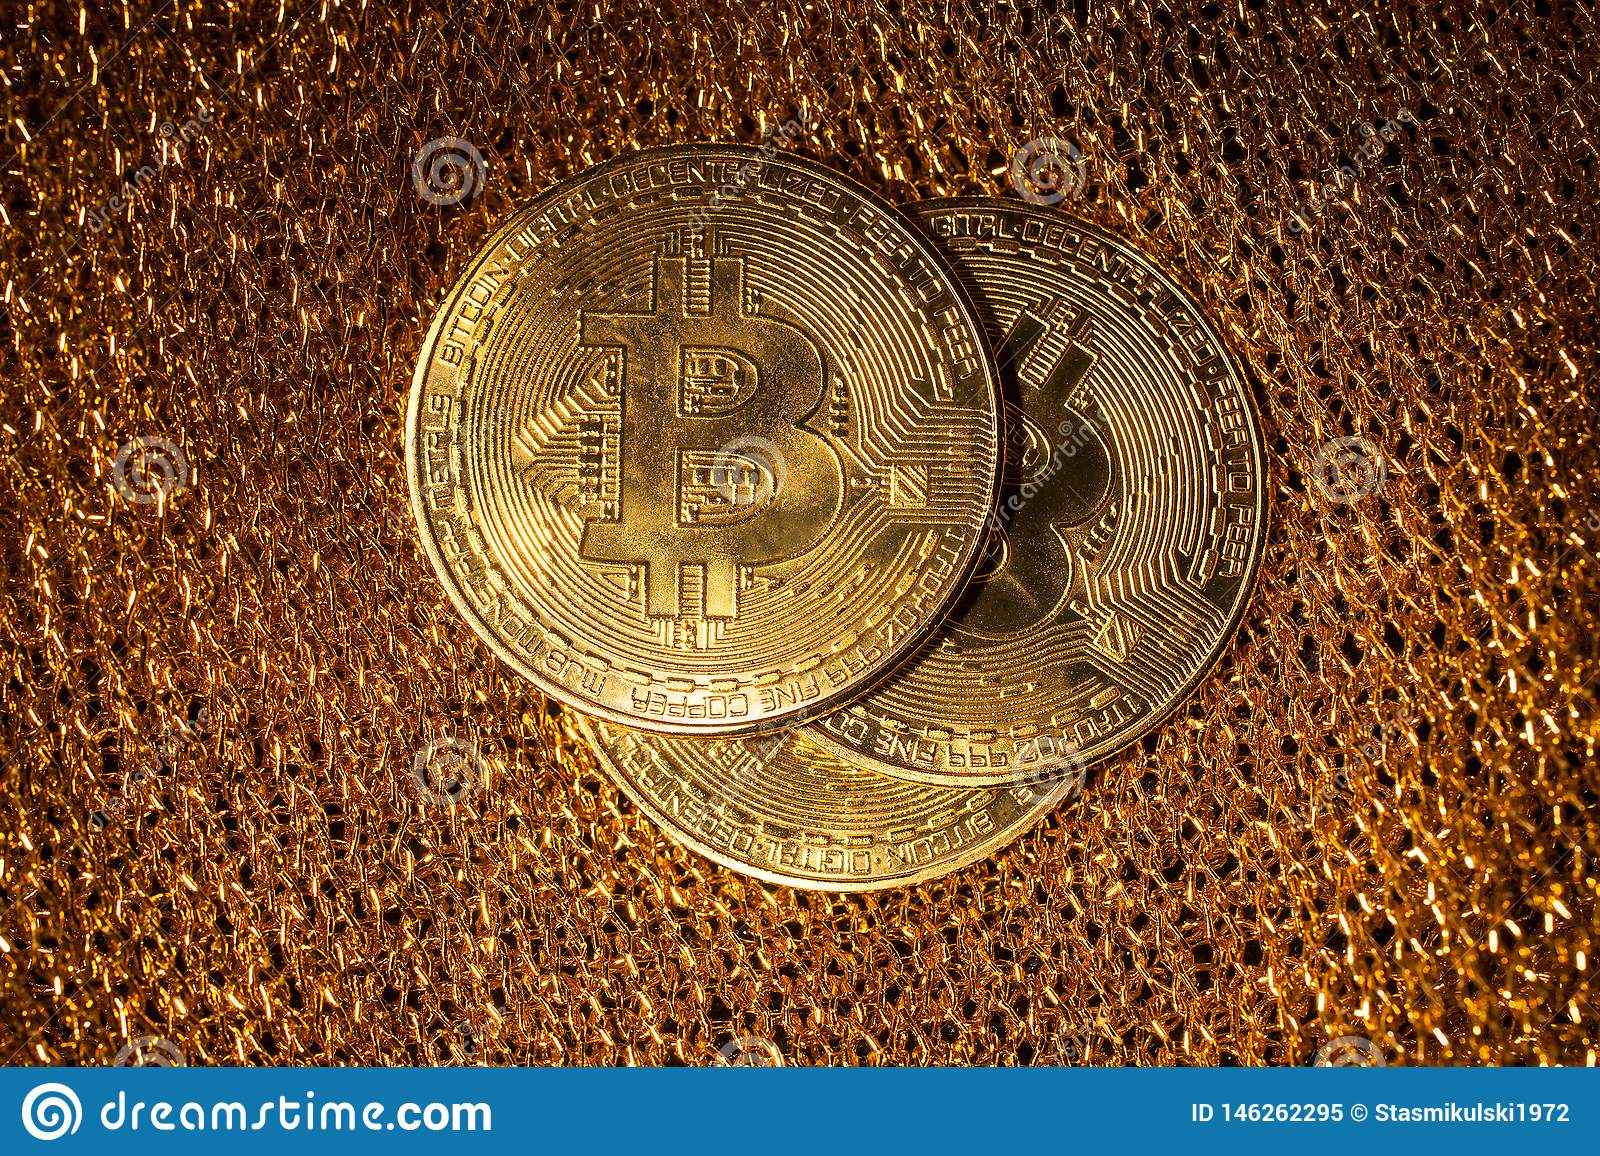 Bitcoin on a gold background